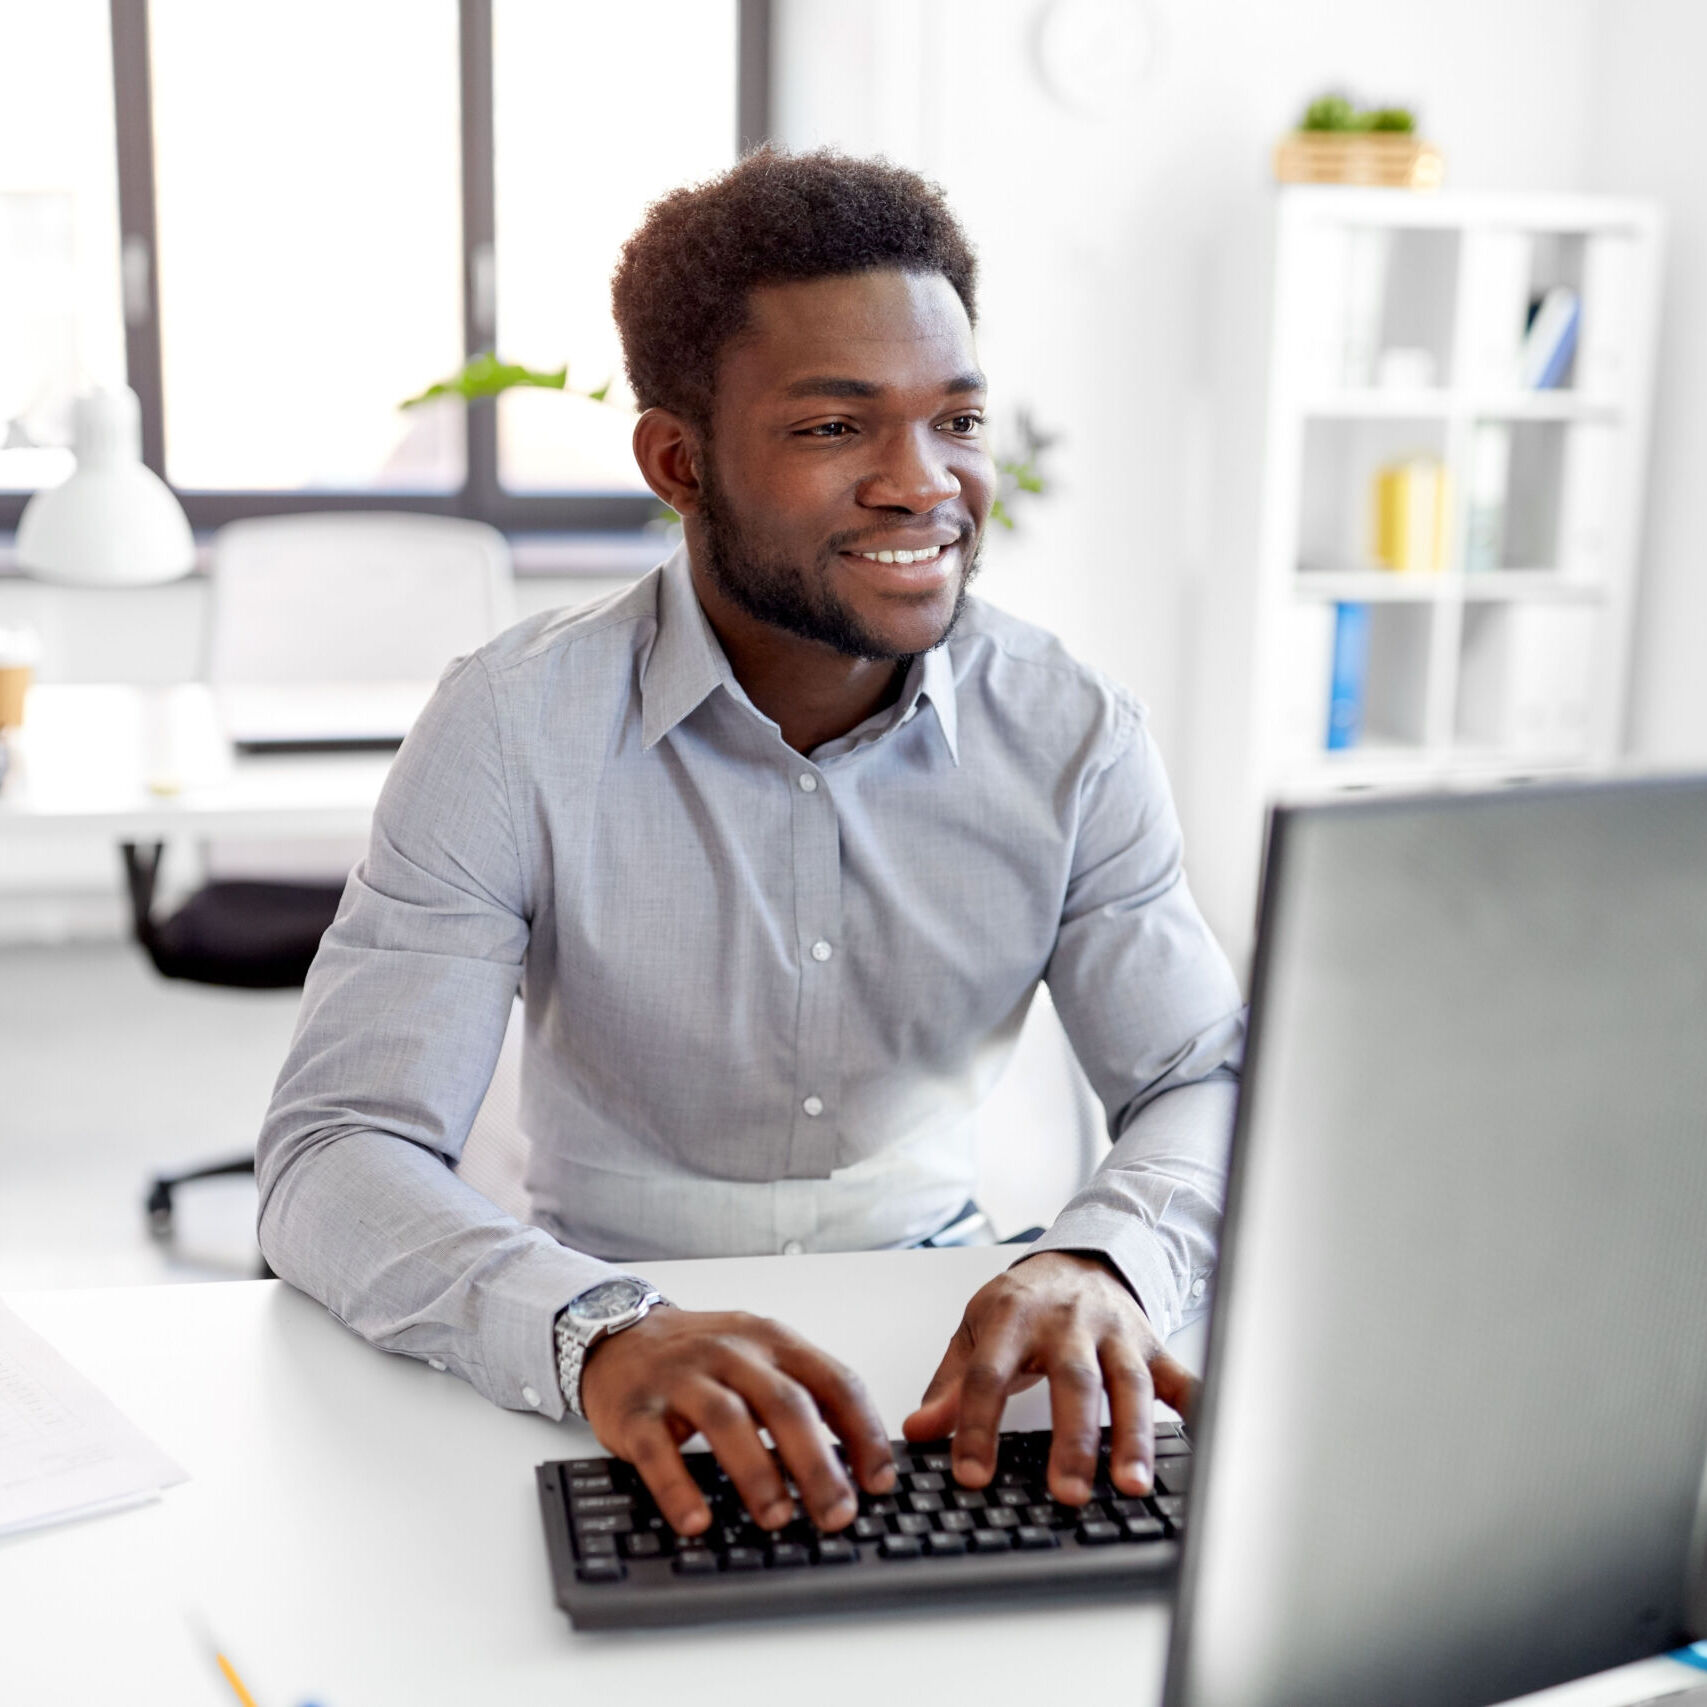 african businessman works with computer at office